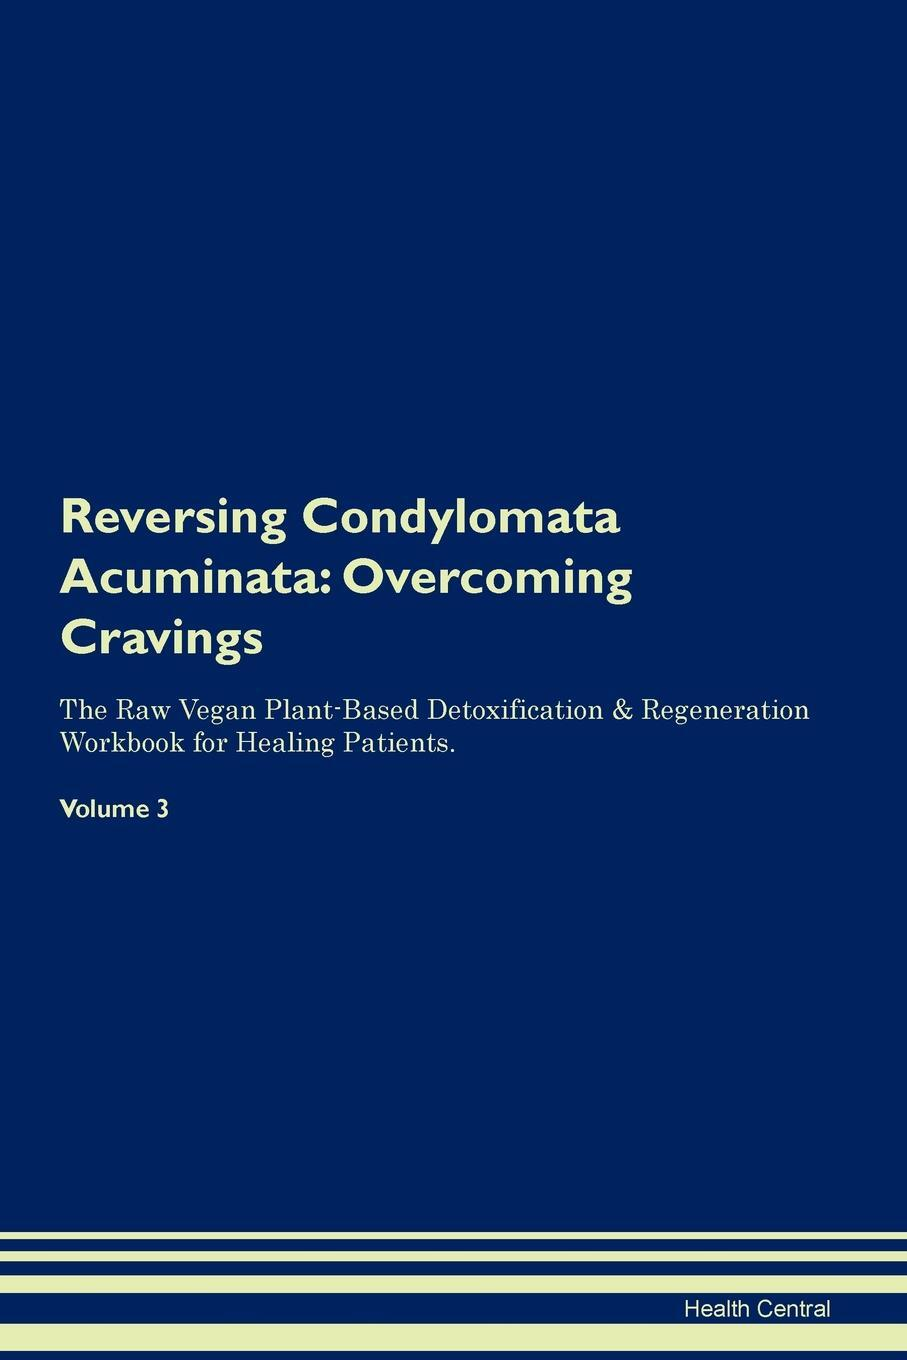 Reversing Condylomata Acuminata. Overcoming Cravings The Raw Vegan Plant-Based Detoxification & Regeneration Workbook for Healing Patients. Volume 3